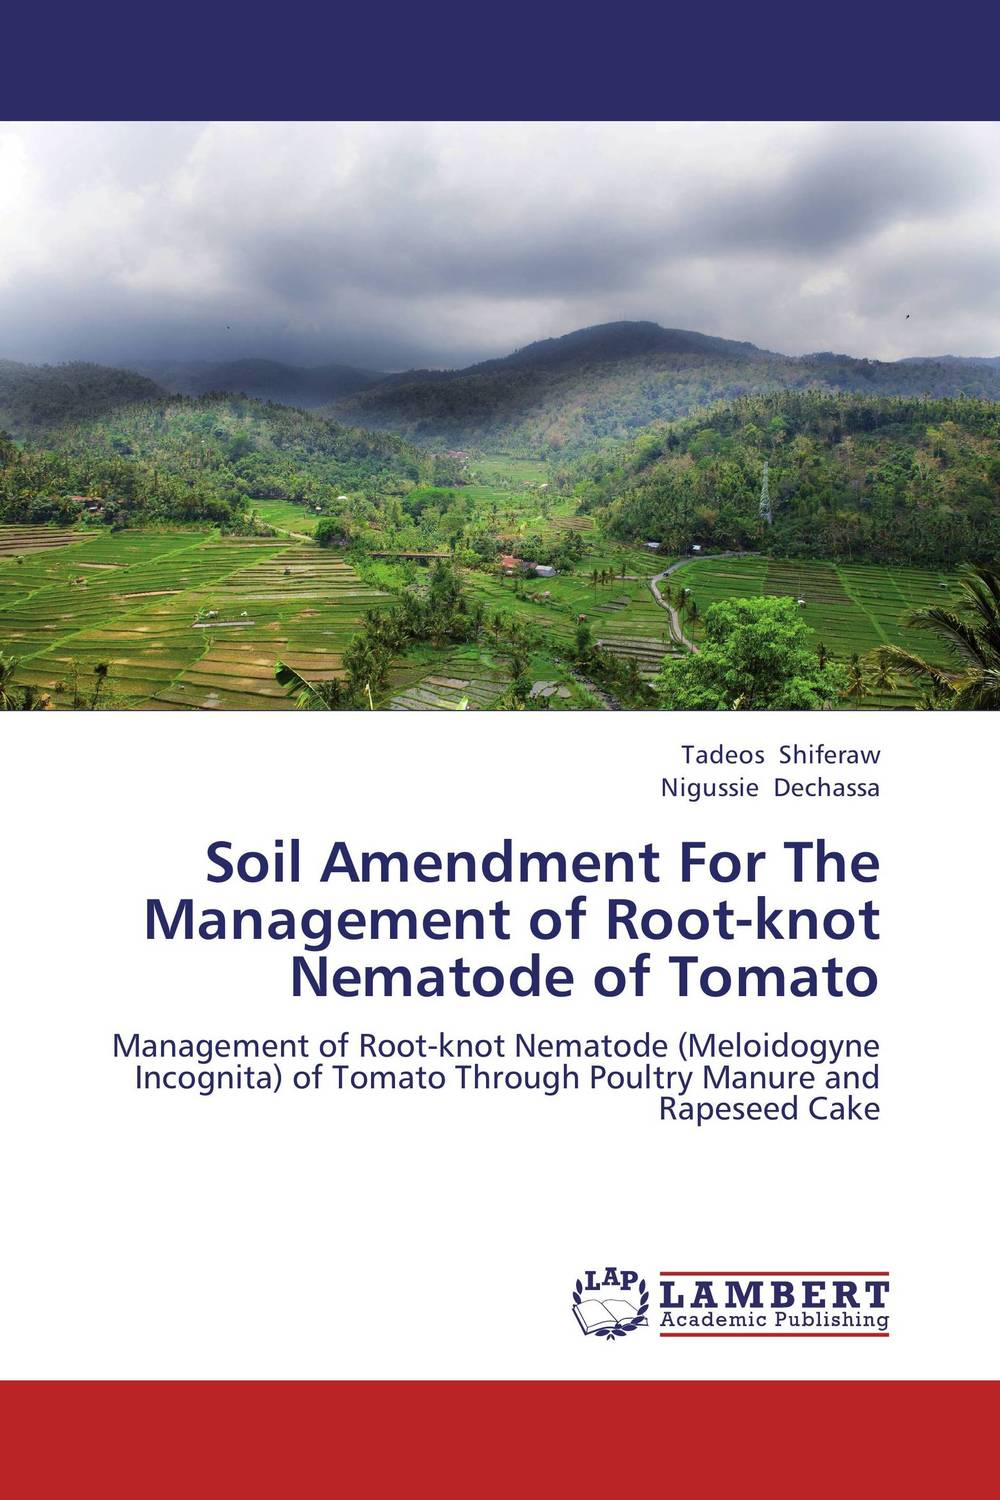 Soil Amendment For The Management of Root-knot Nematode of Tomato the teeth with root canal students to practice root canal preparation and filling actually